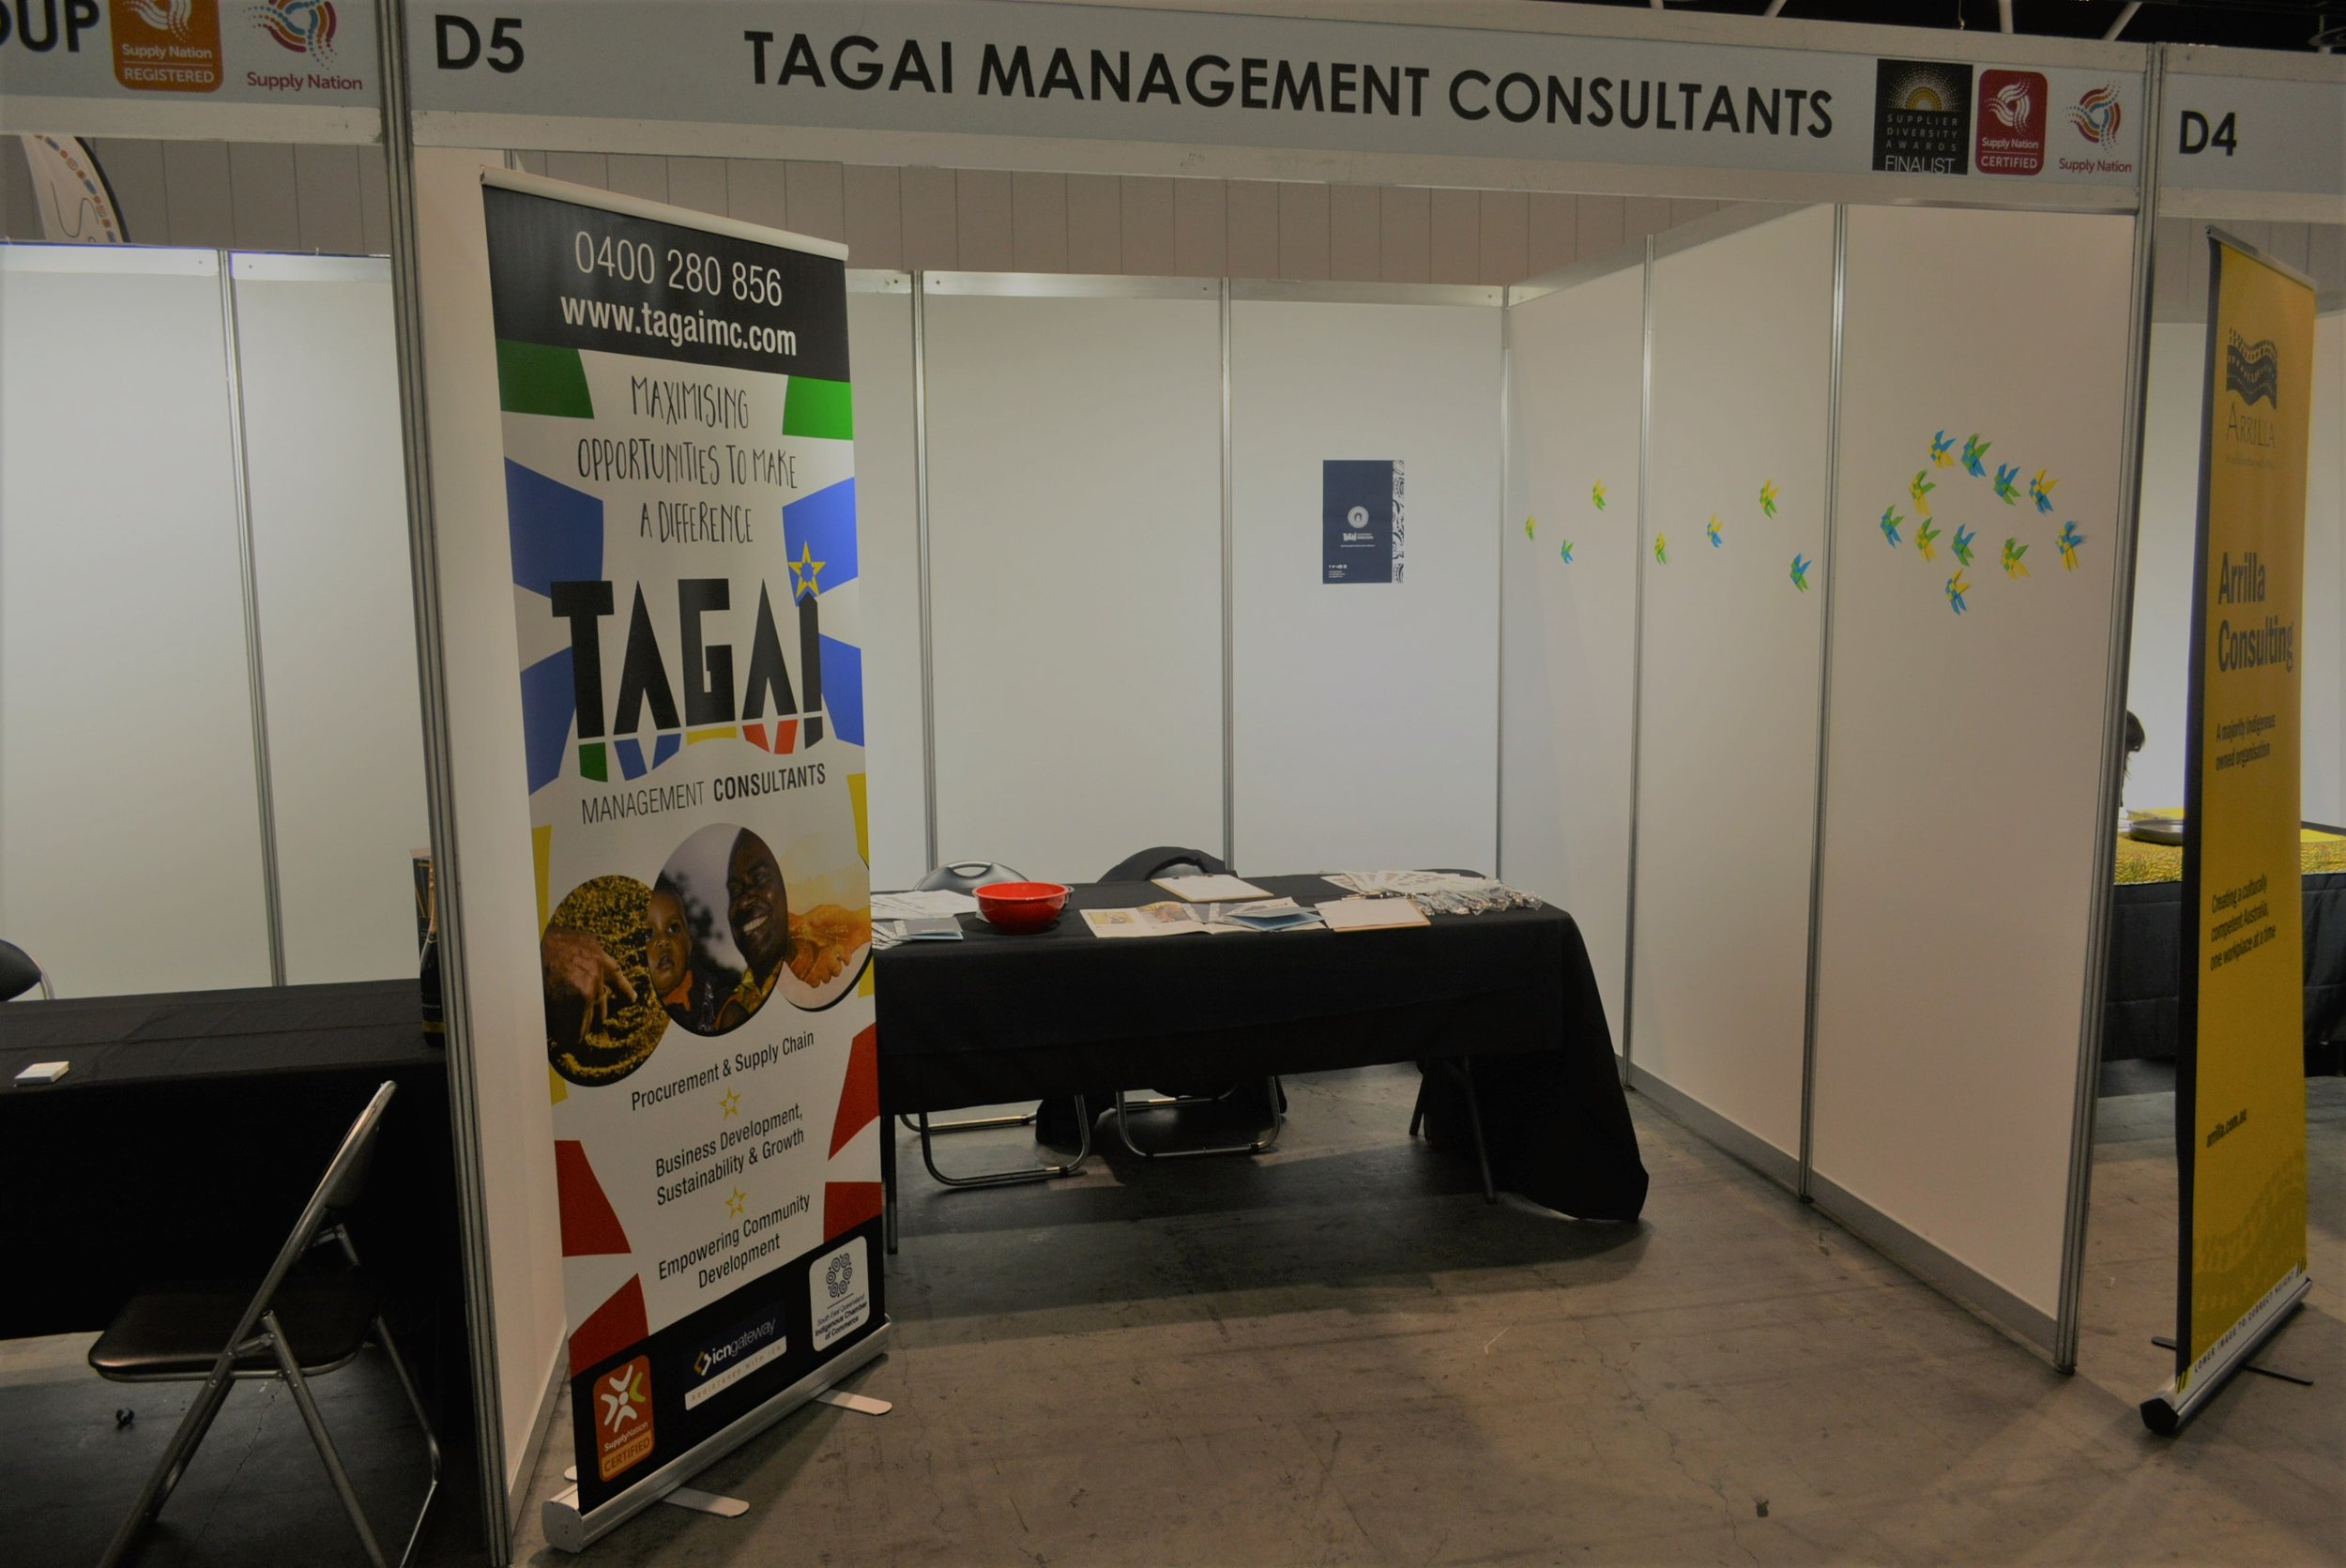 Tagai Management Consultants 2018 Supply Nation Connect Trade show booth